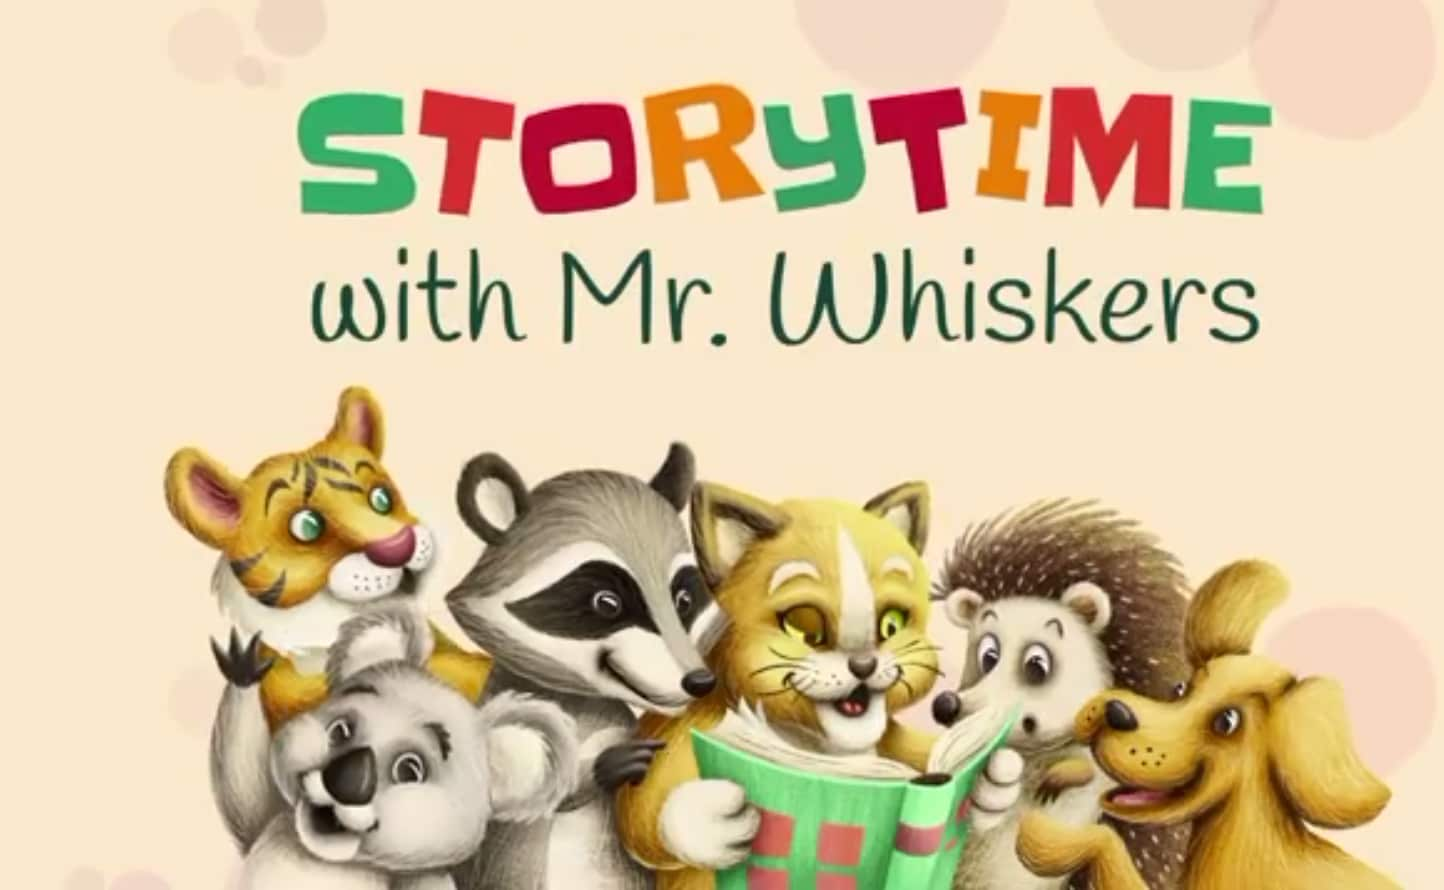 Storytime with Mr. Whiskers graphic